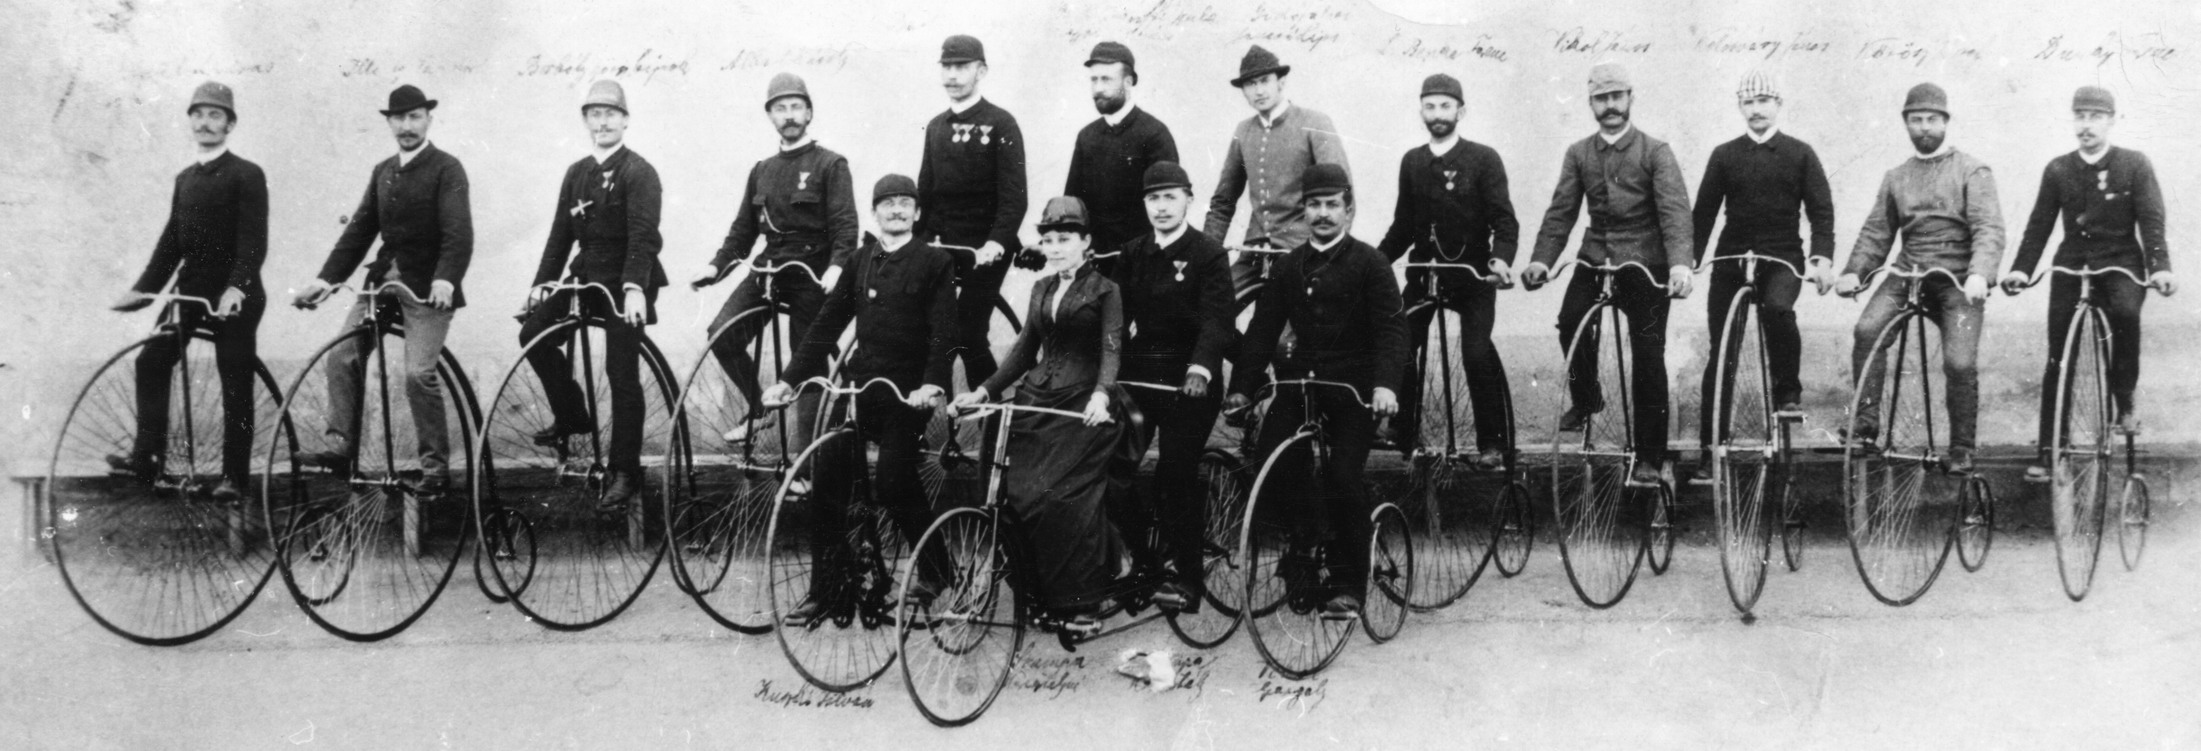 kerekpar_kolozsvari_atletikai_club_bicycle_kore1888_resize.jpg